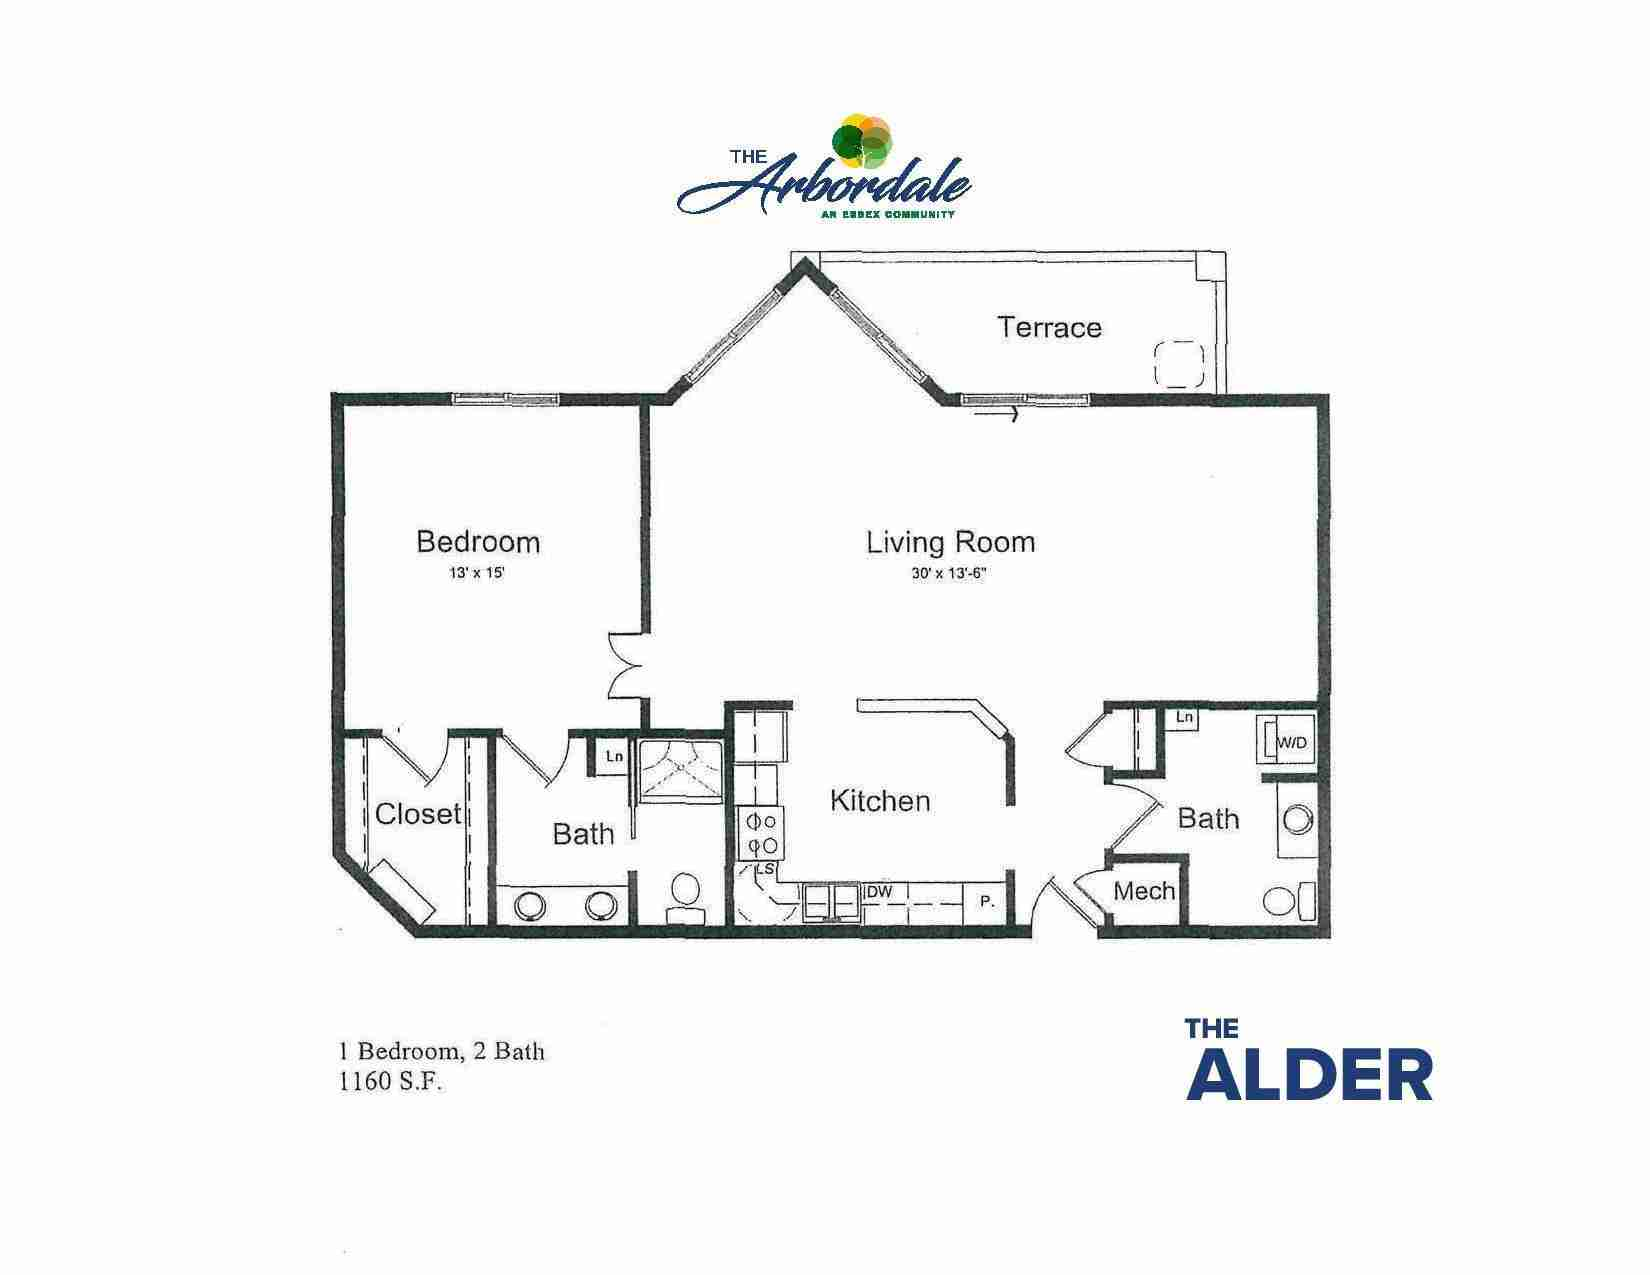 the alder floor plan, 1 bedroom, 2 bath, 1160 sq ft